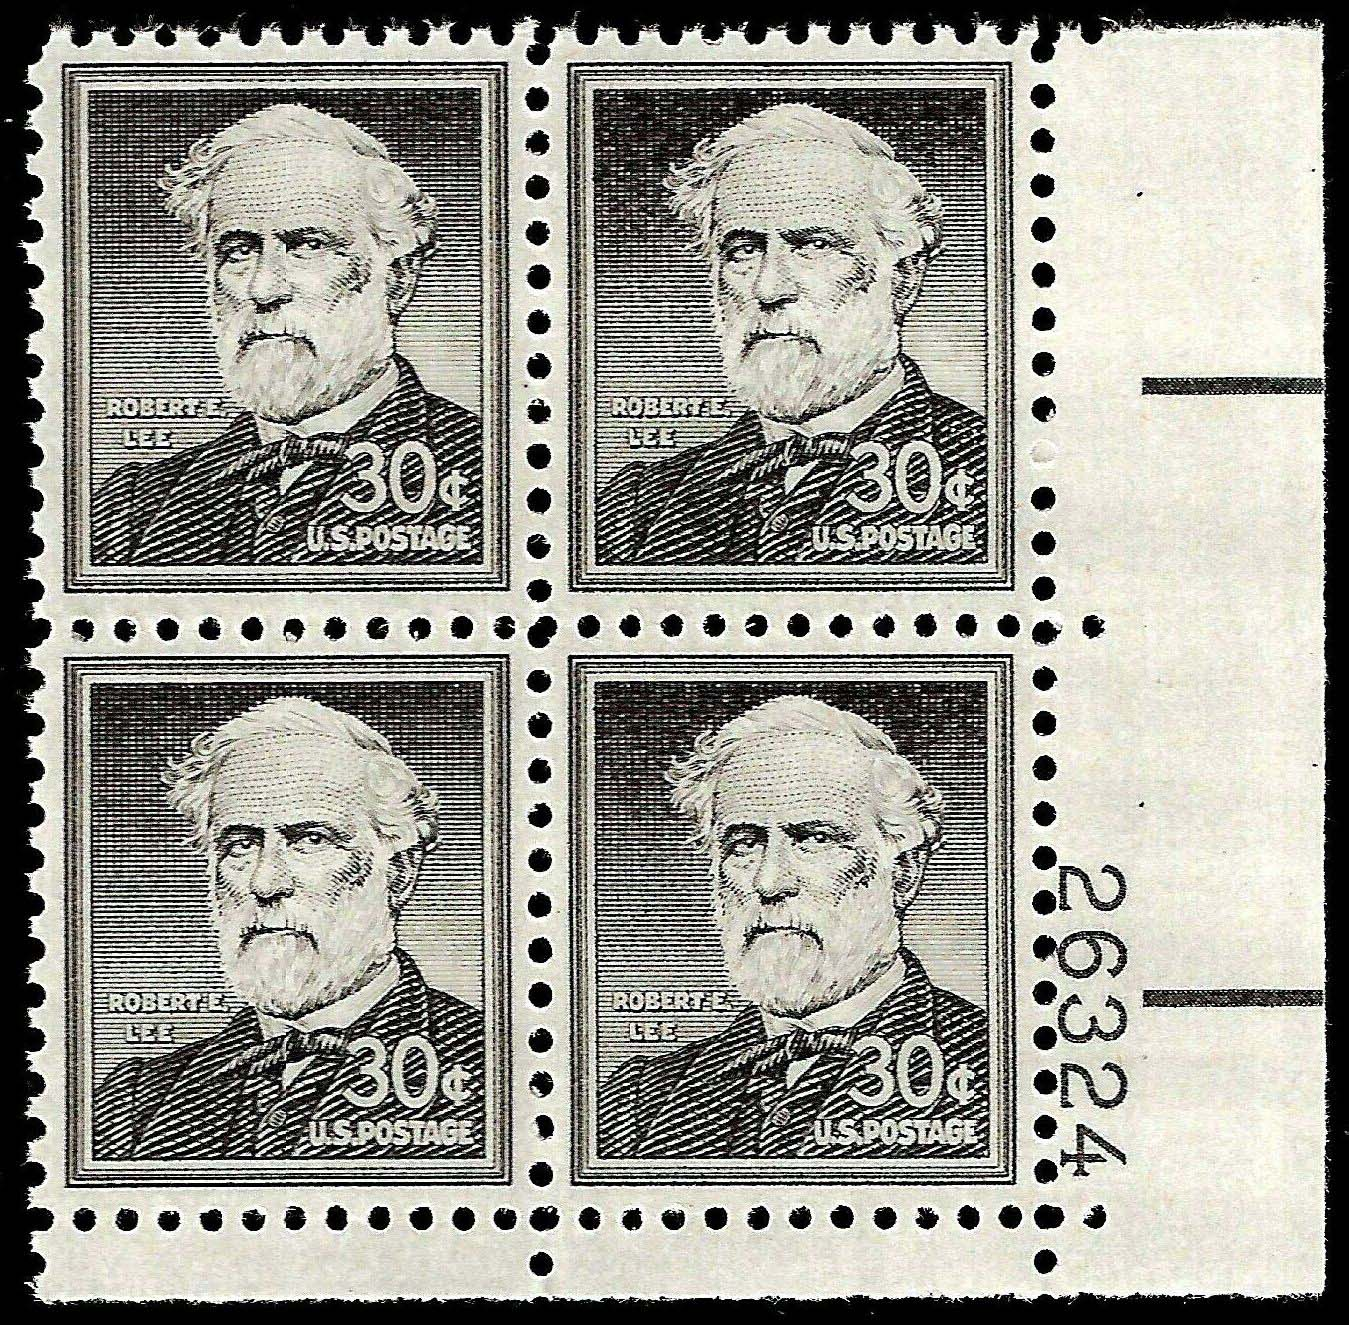 "Scott 1049 Plate Block (30 cents) <p> <a href=""/images/USA-Scott-1049-PB.jpg""><font color=green><b>View the image</a></b></font>"